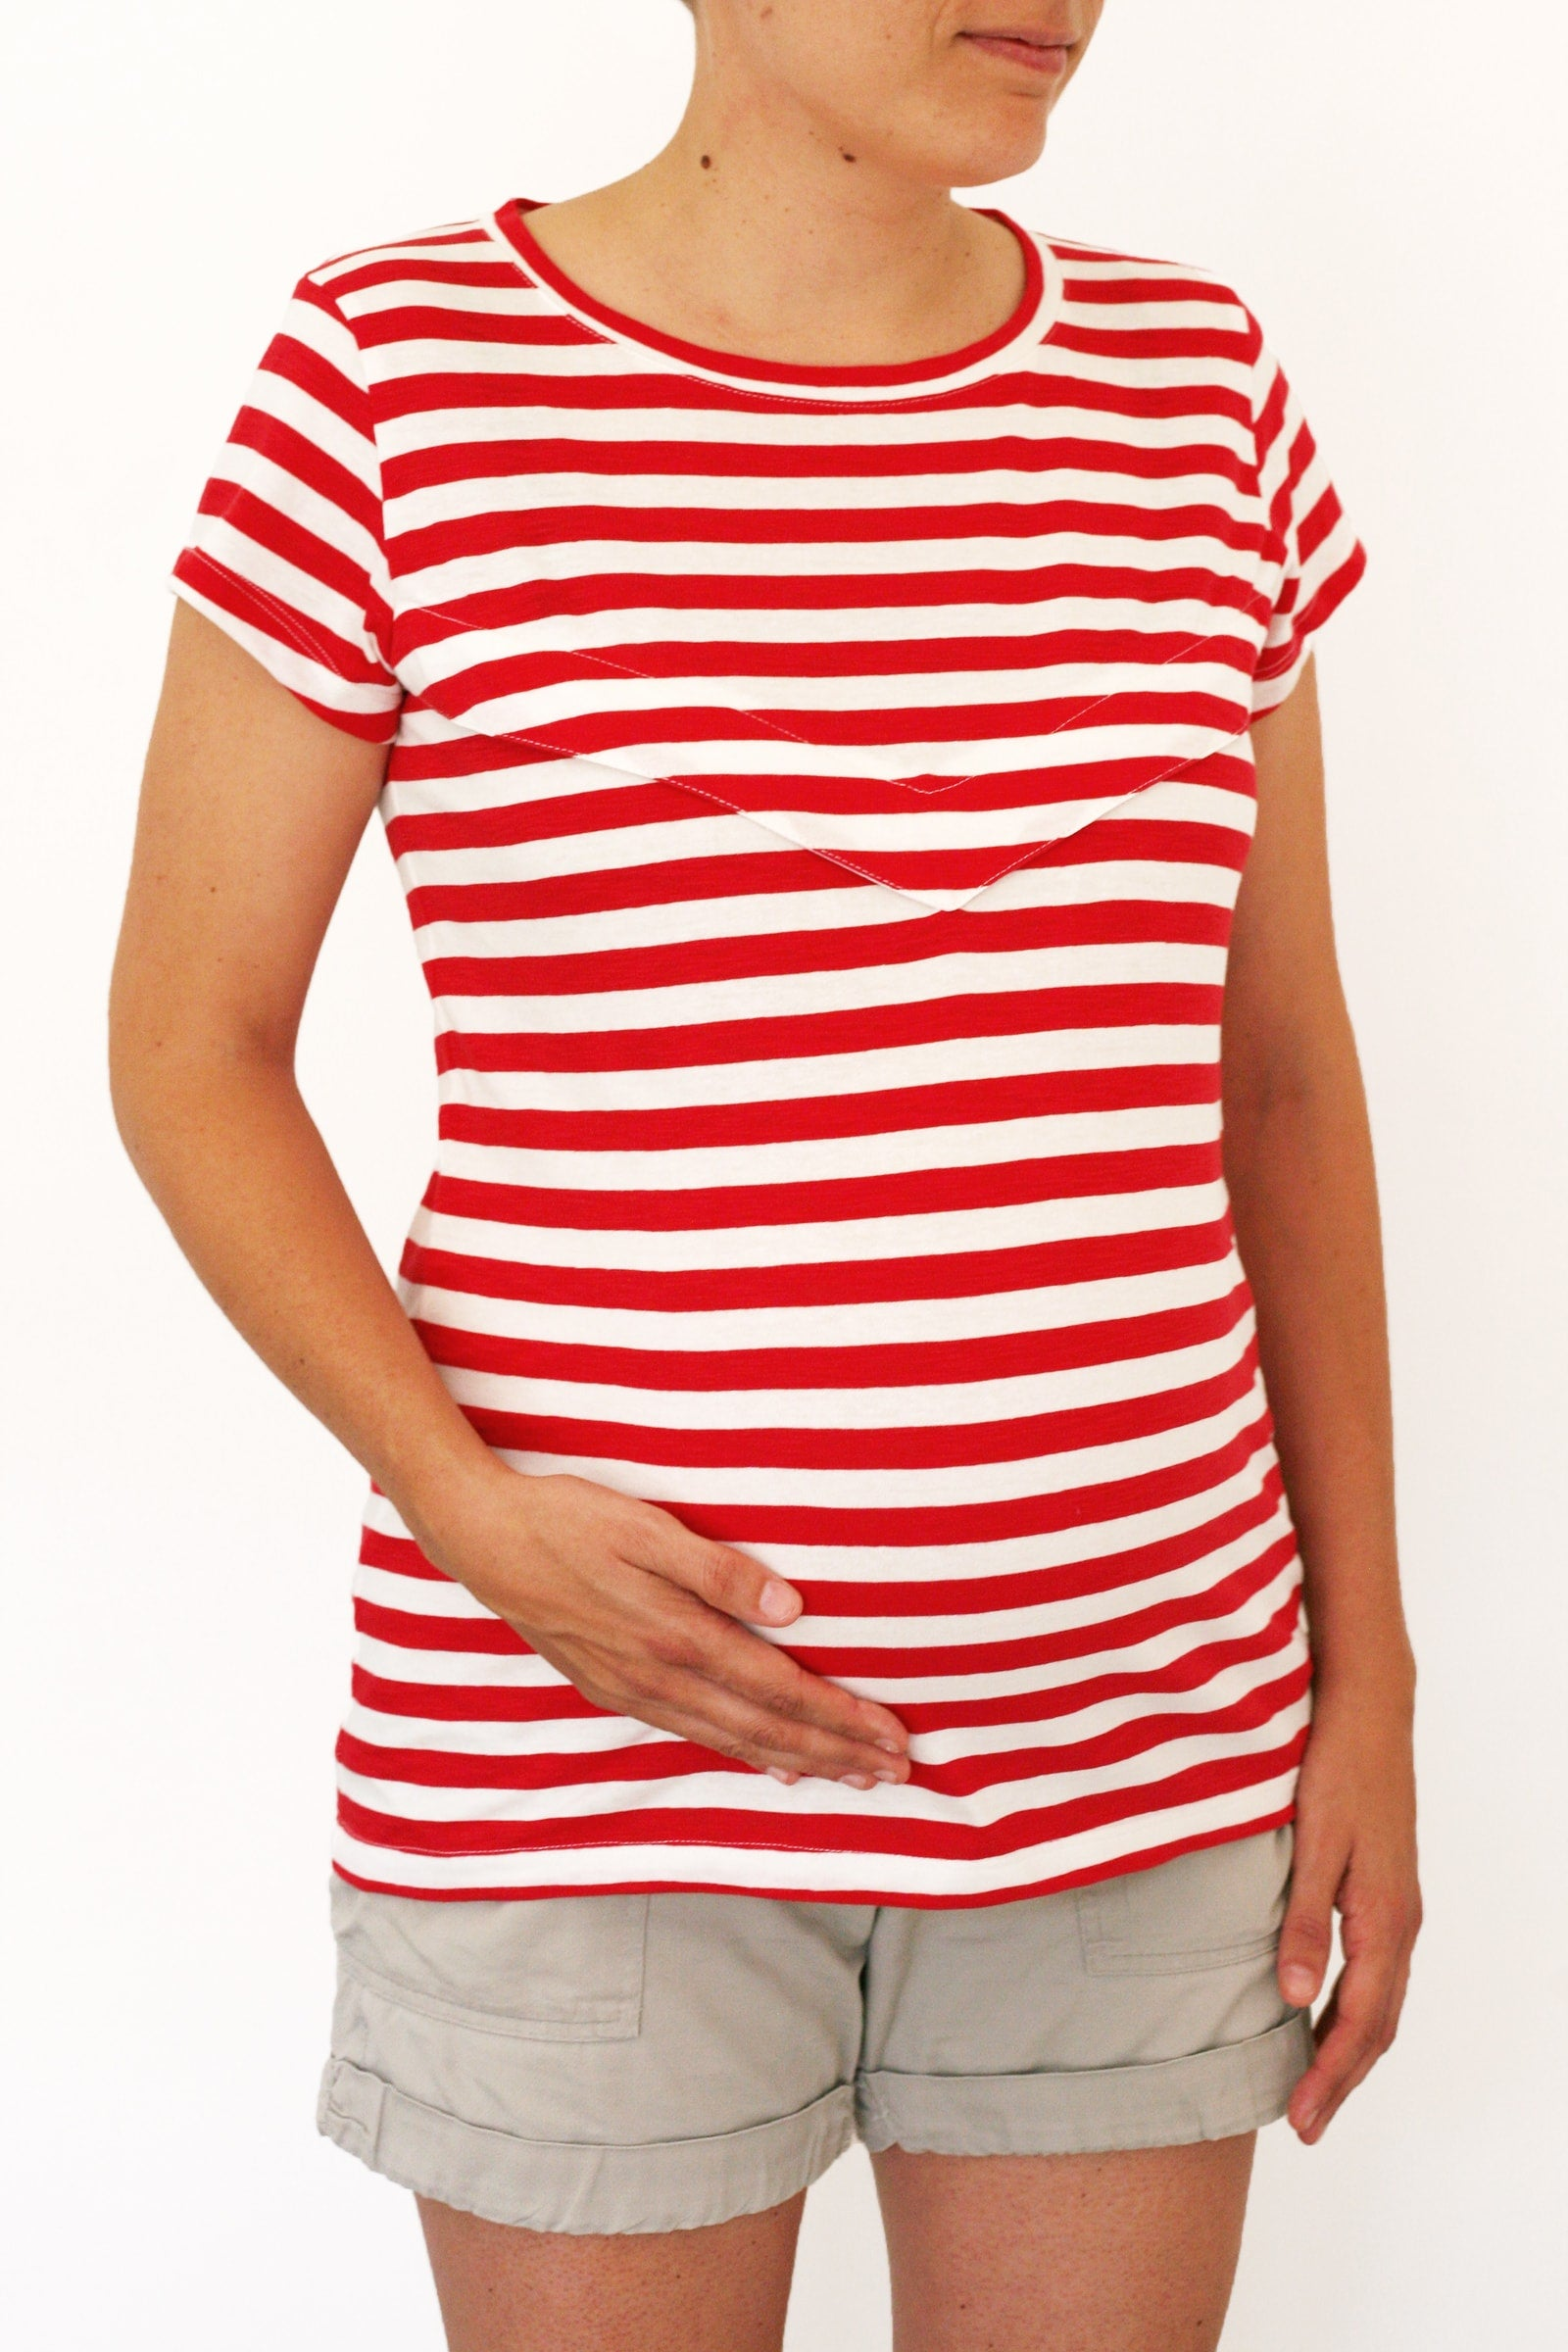 Gemma Tee - front - red striped